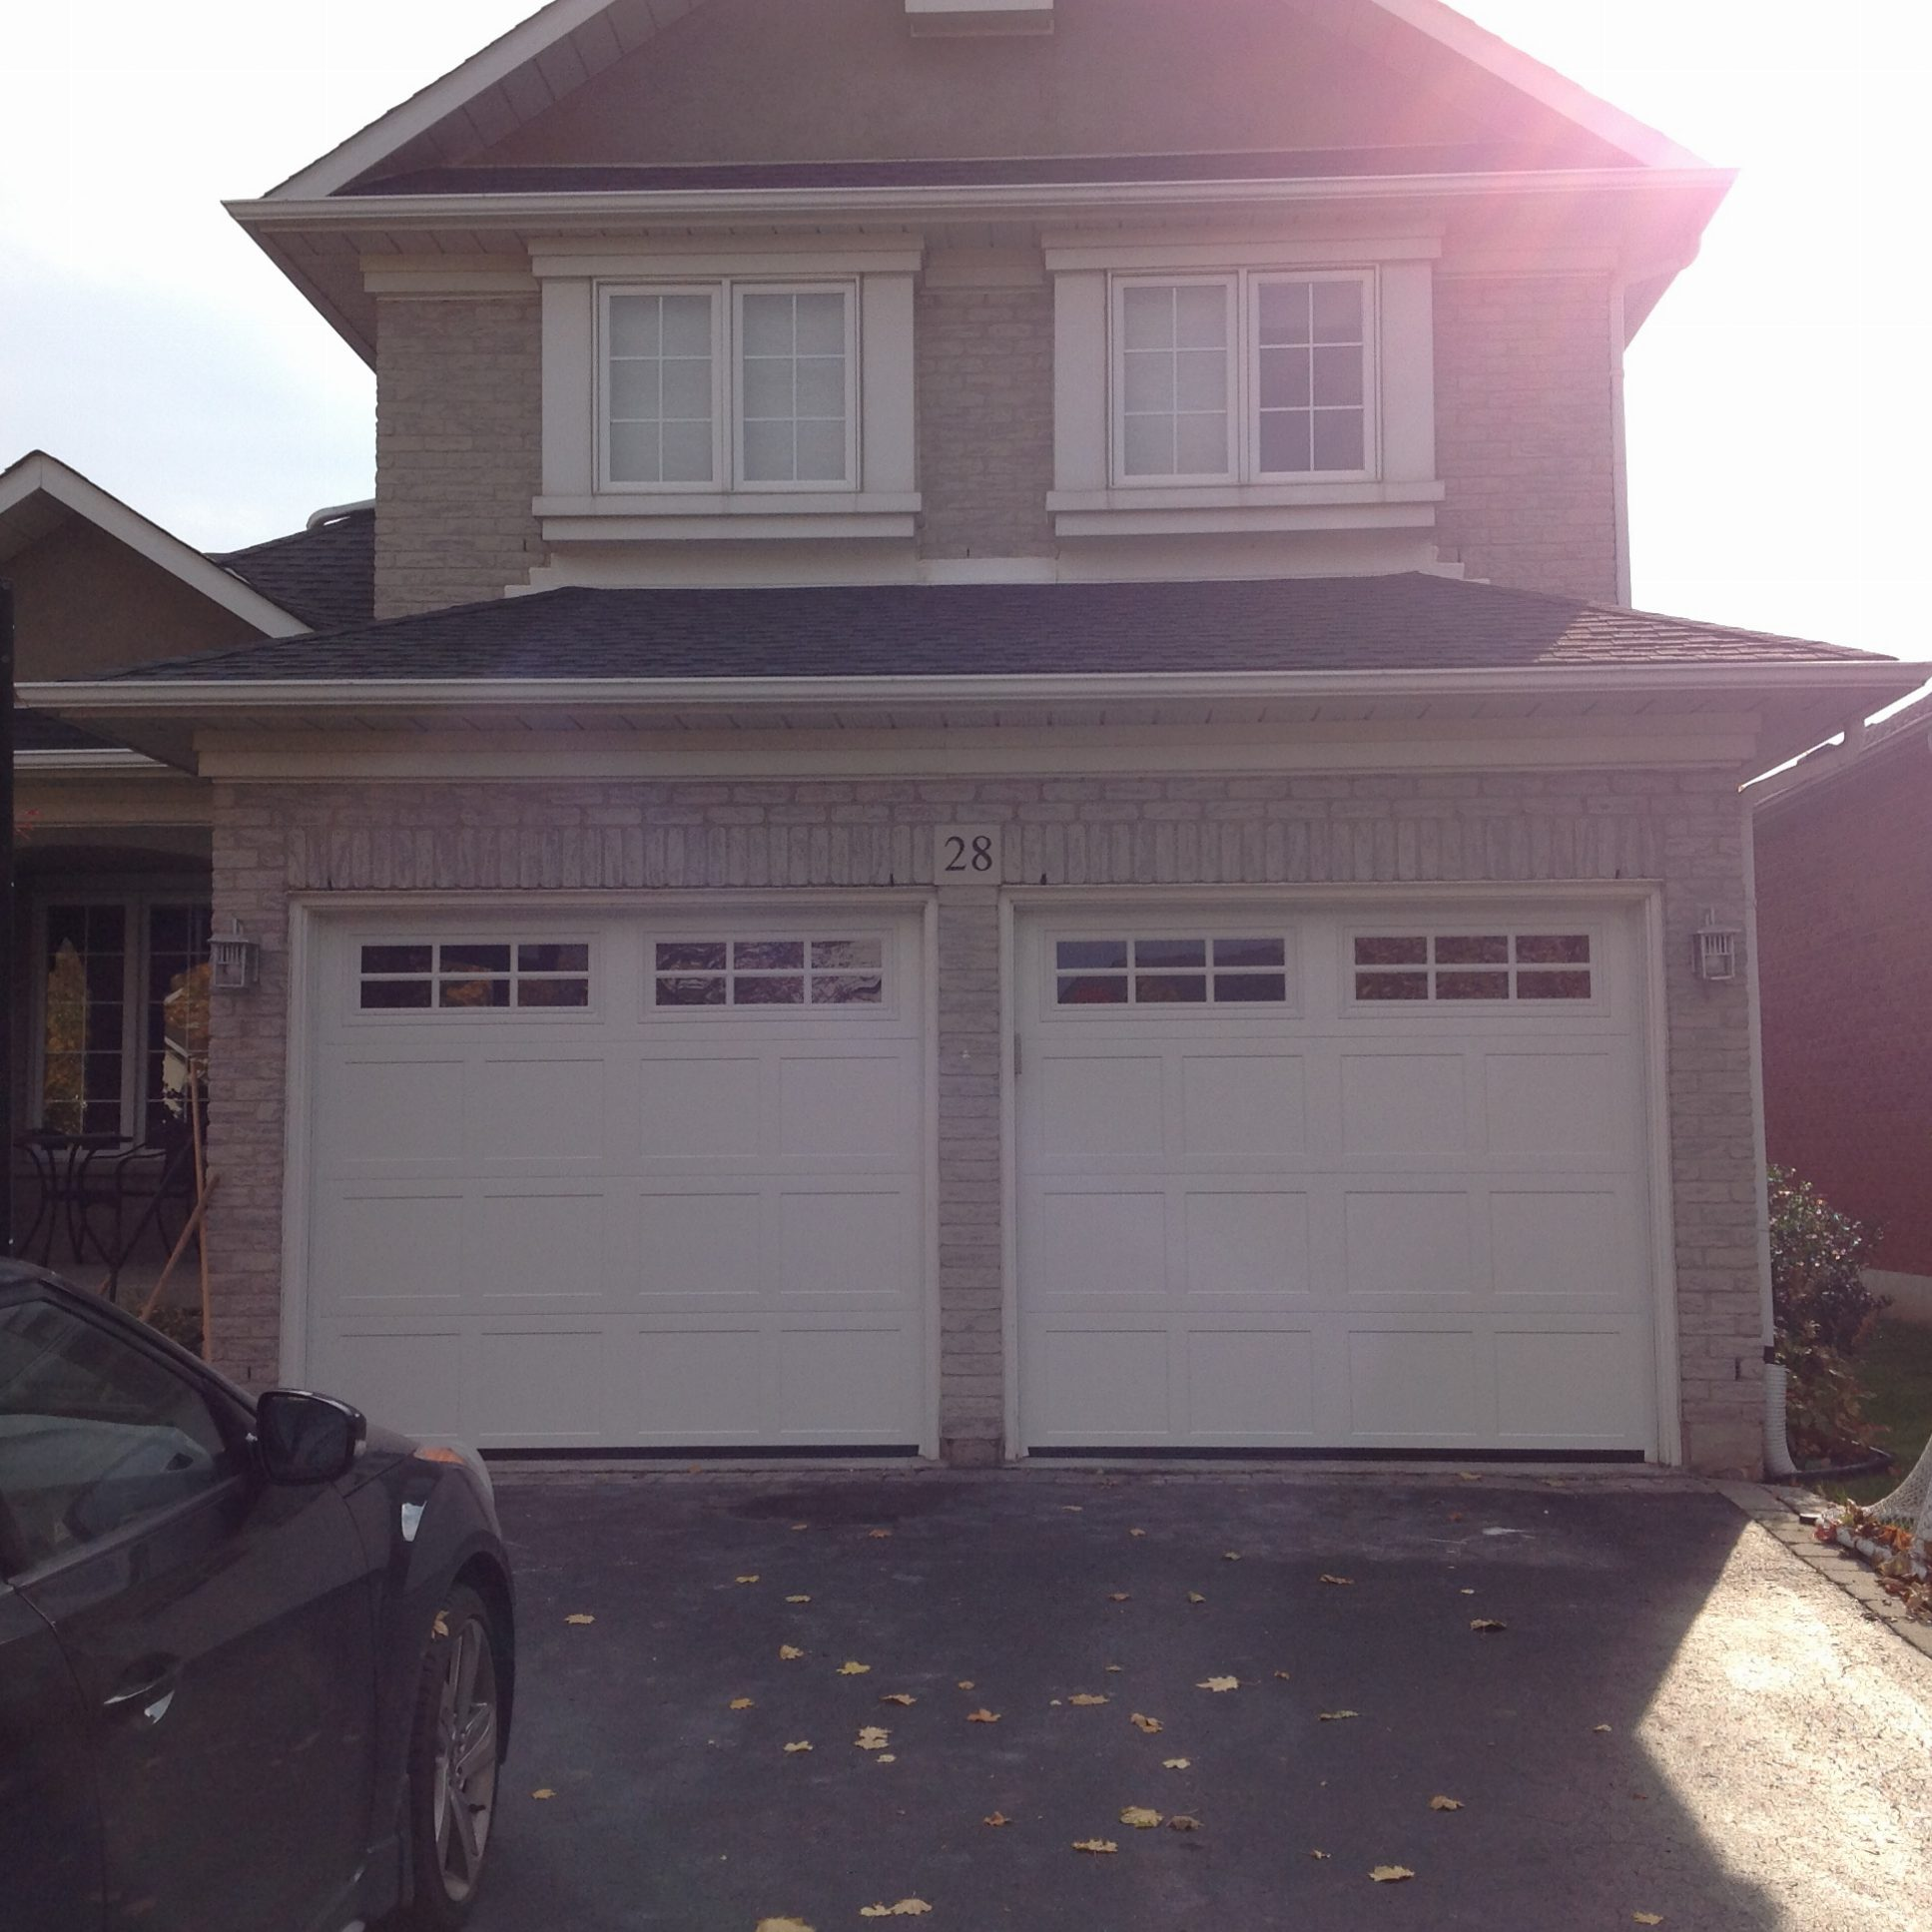 Residential garage doors hamilton door systems after long panel with square grid windows rubansaba